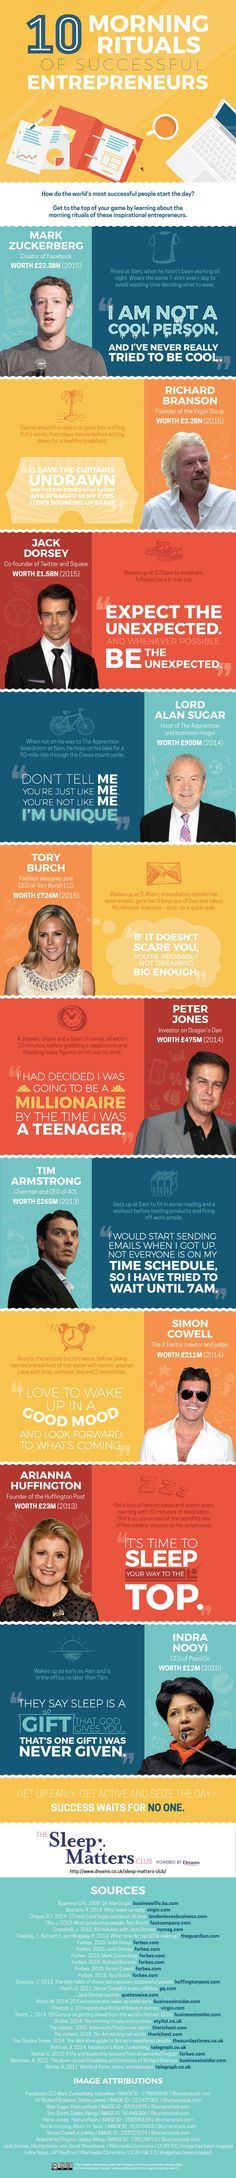 The Morning Rituals of 10 of the World's Most Inspirational Entrepreneurs (Infographic)